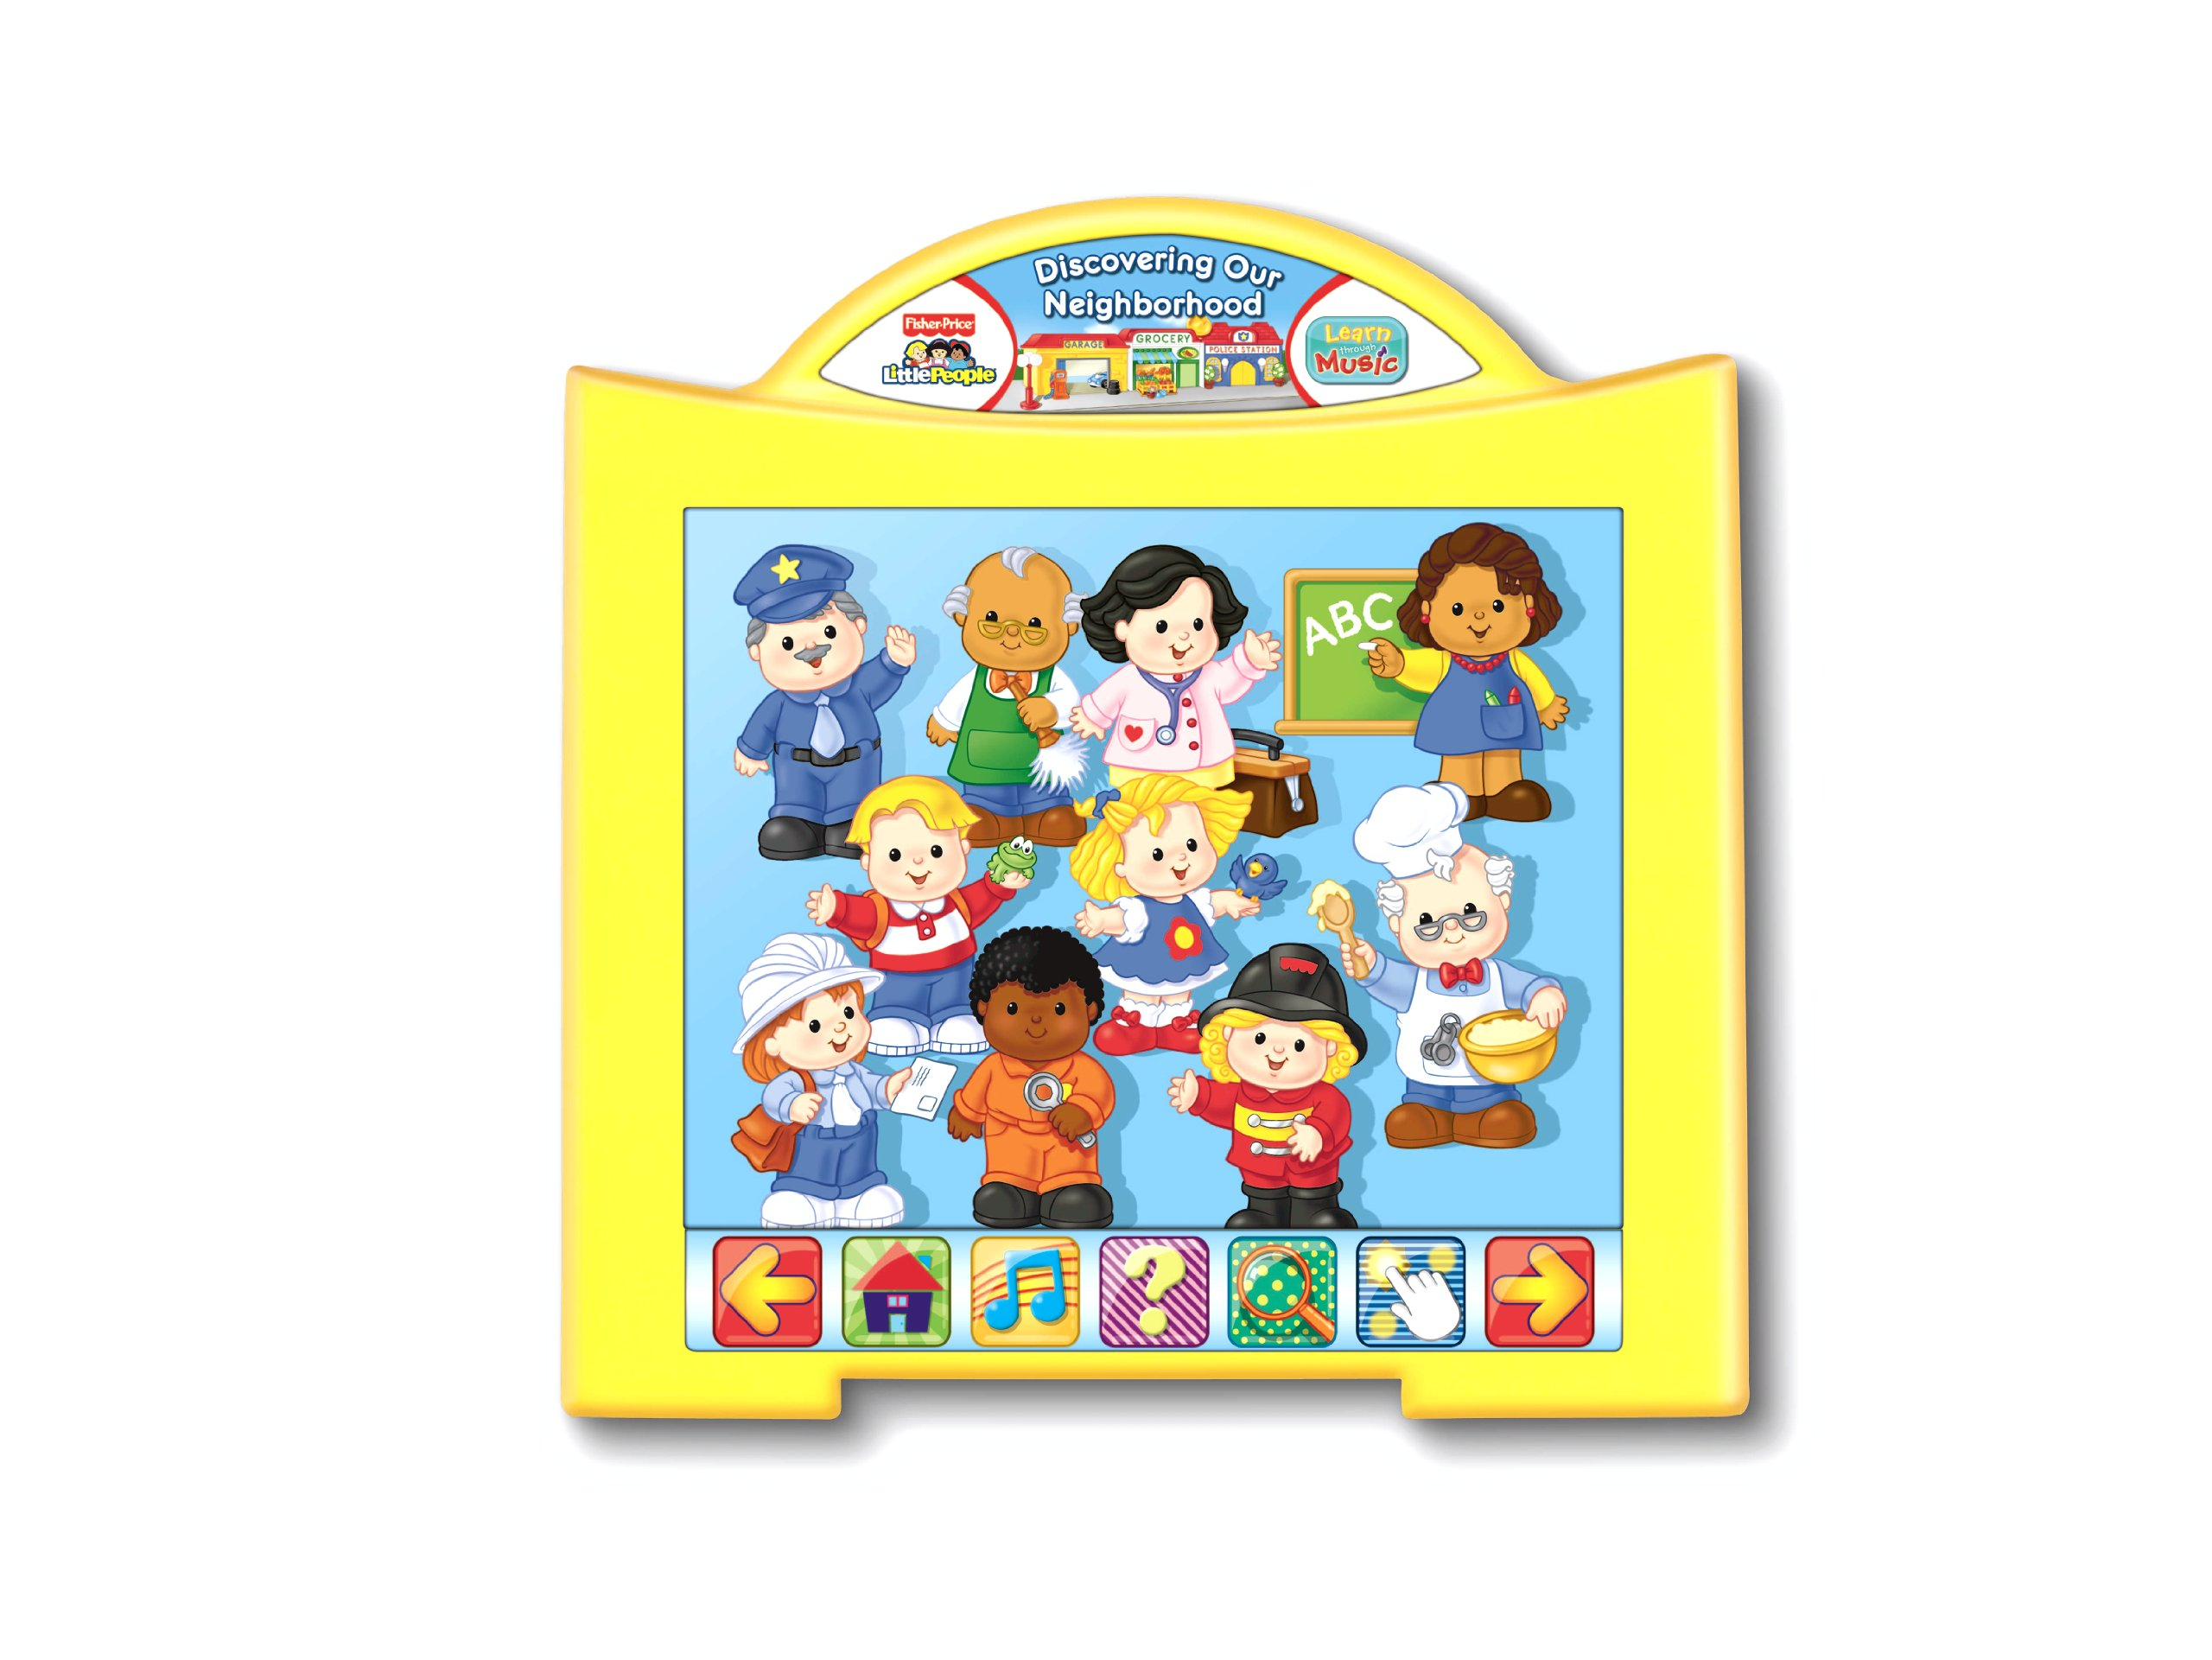 Fisher-Price Learn Through Music Touchpad Software - Little People's Discovering The Neighborhood by Fisher-Price (Image #3)